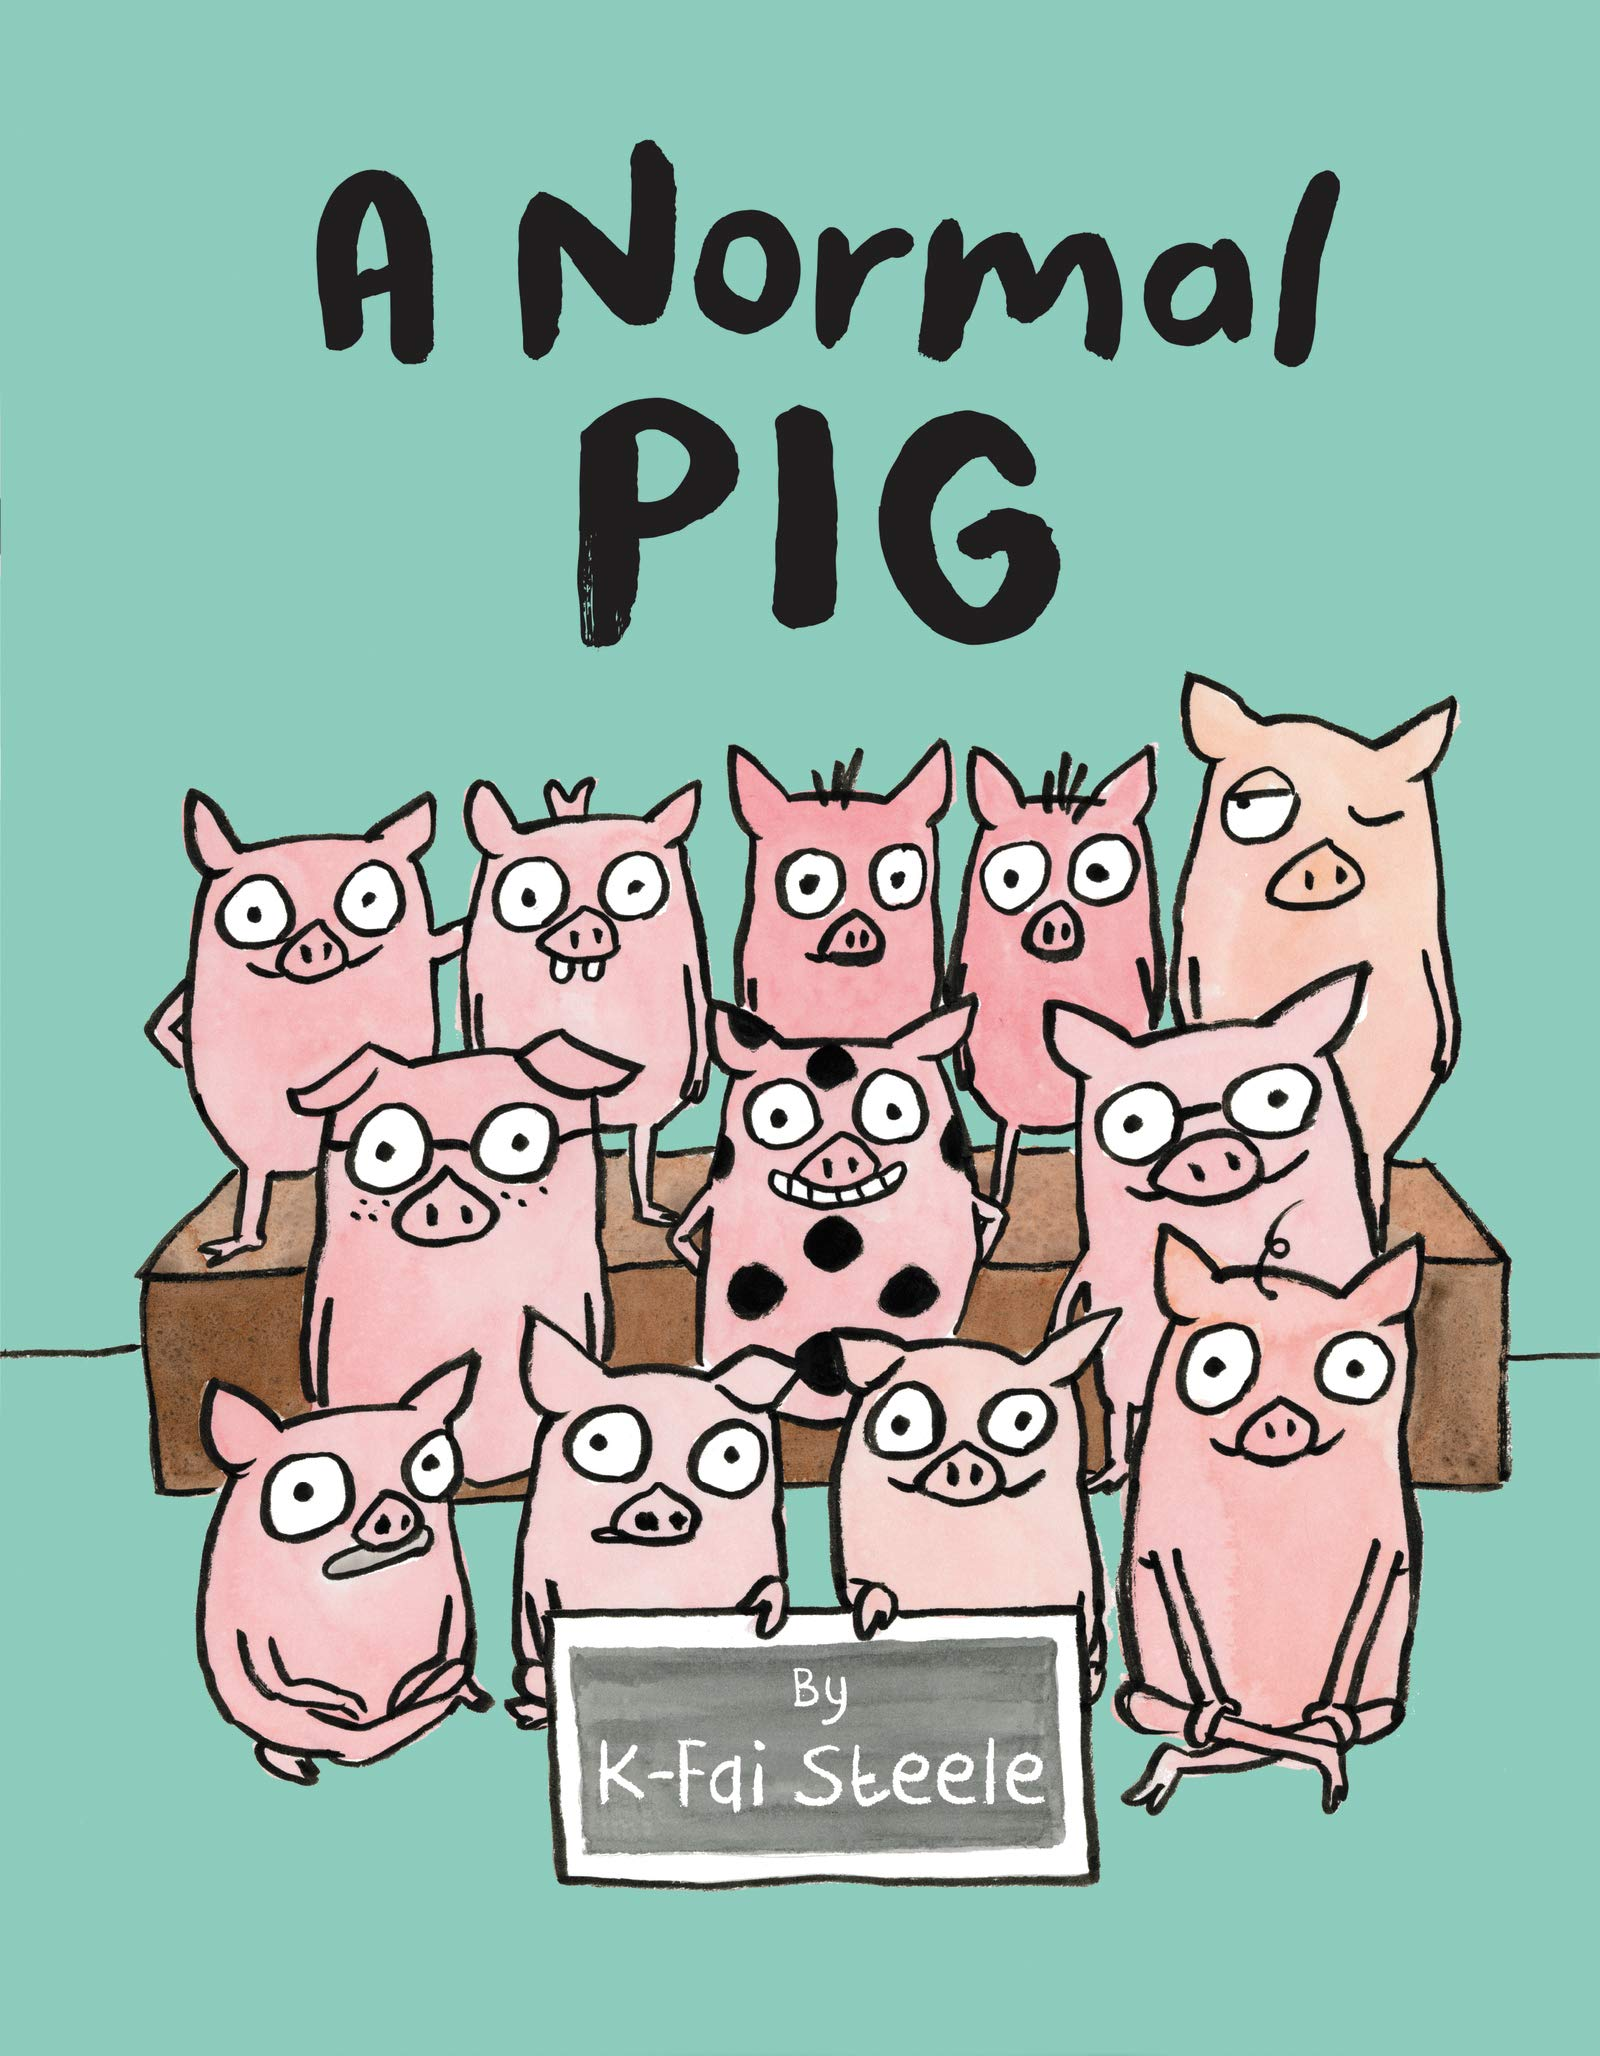 A Normal Pig book cover